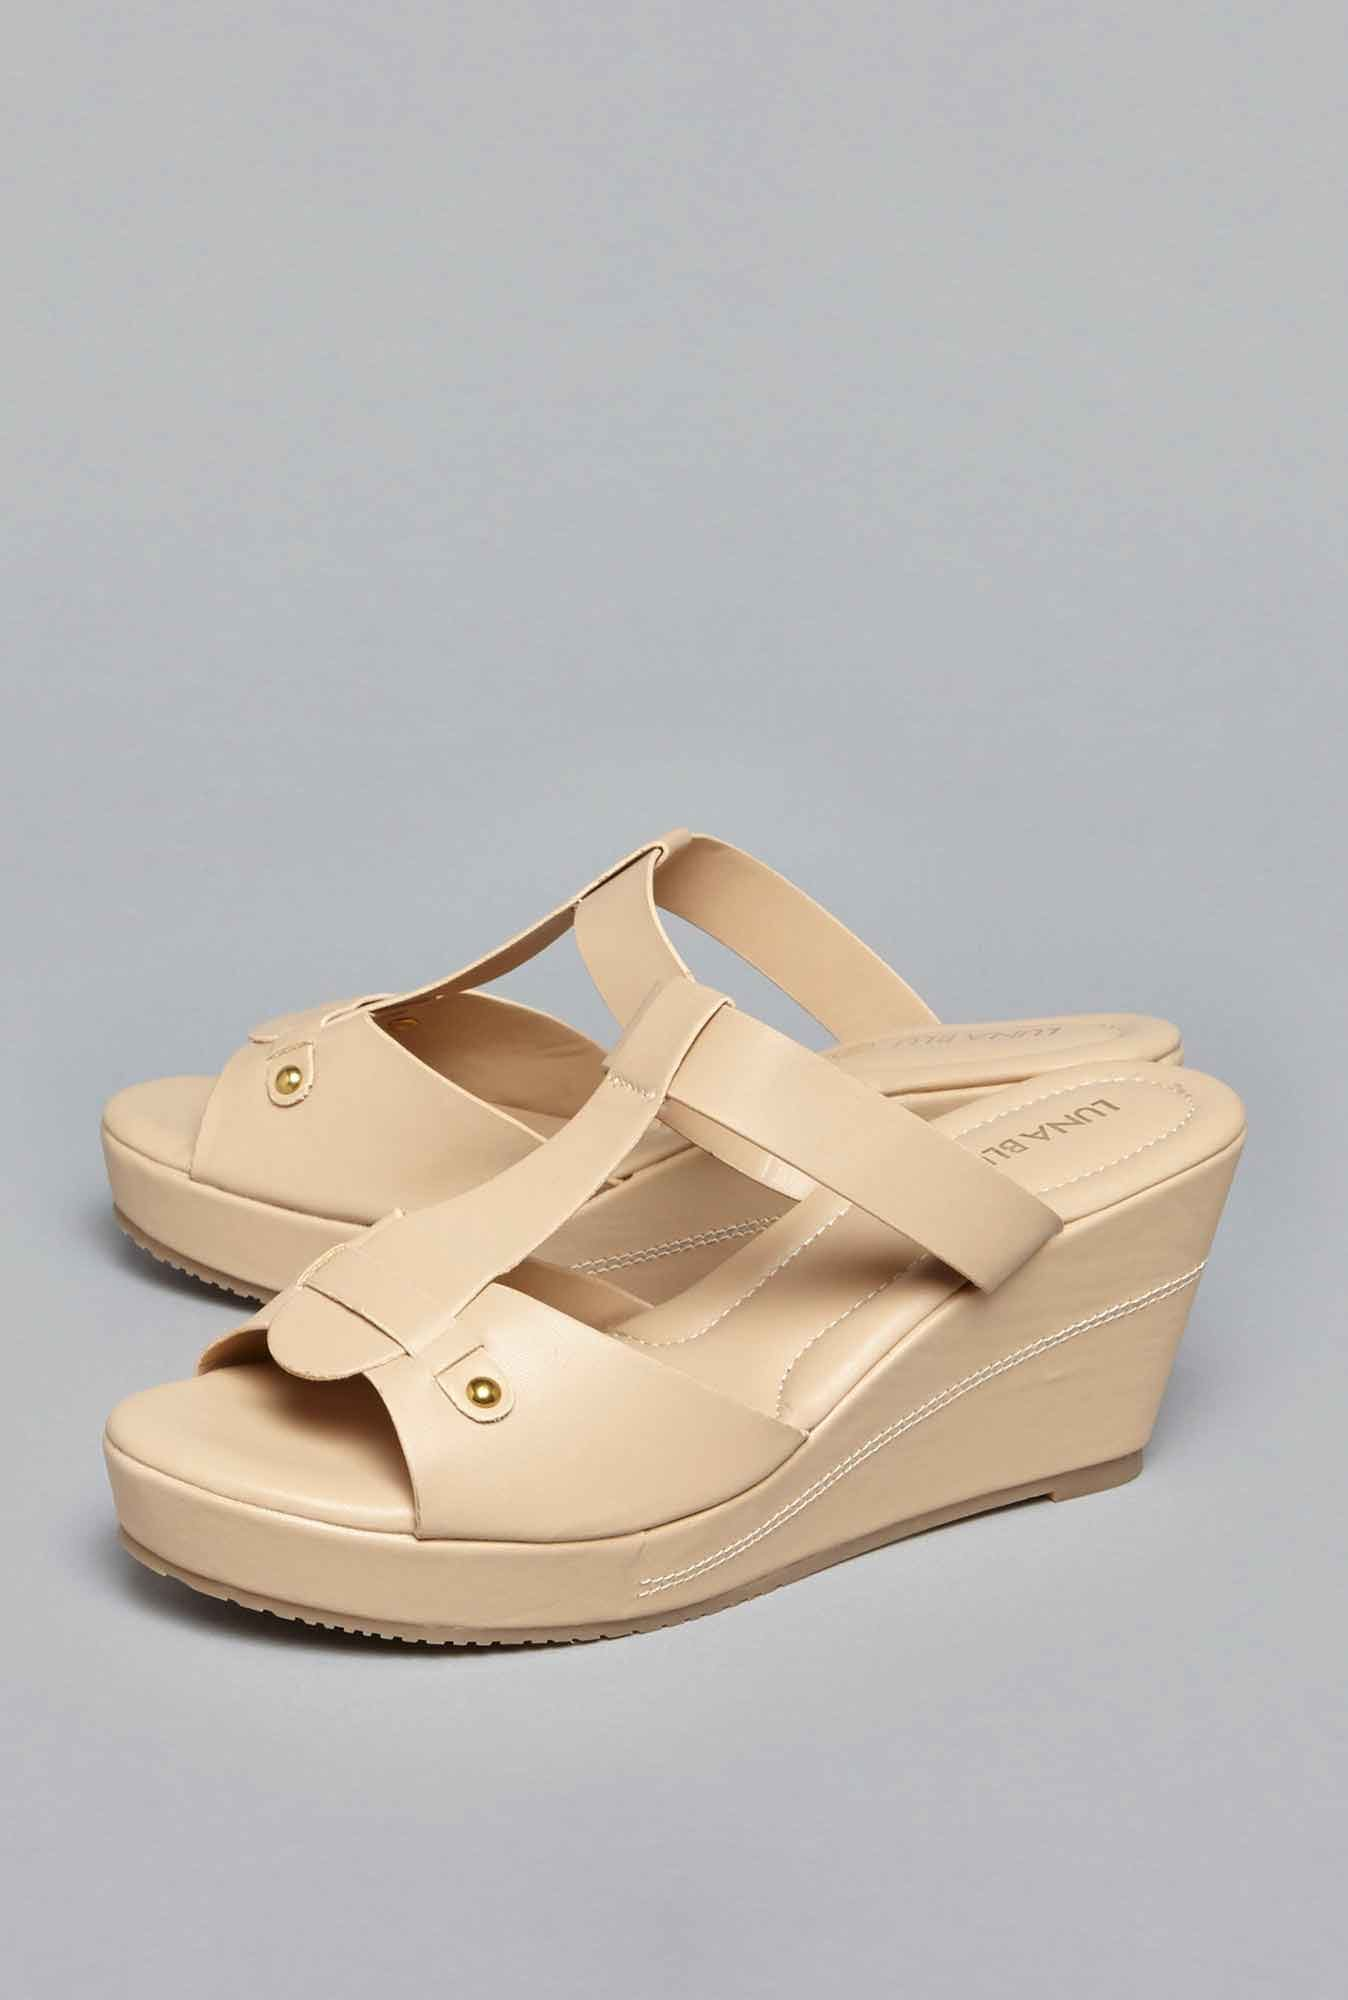 LUNA BLU by Westside Beige Slip-On Sandals